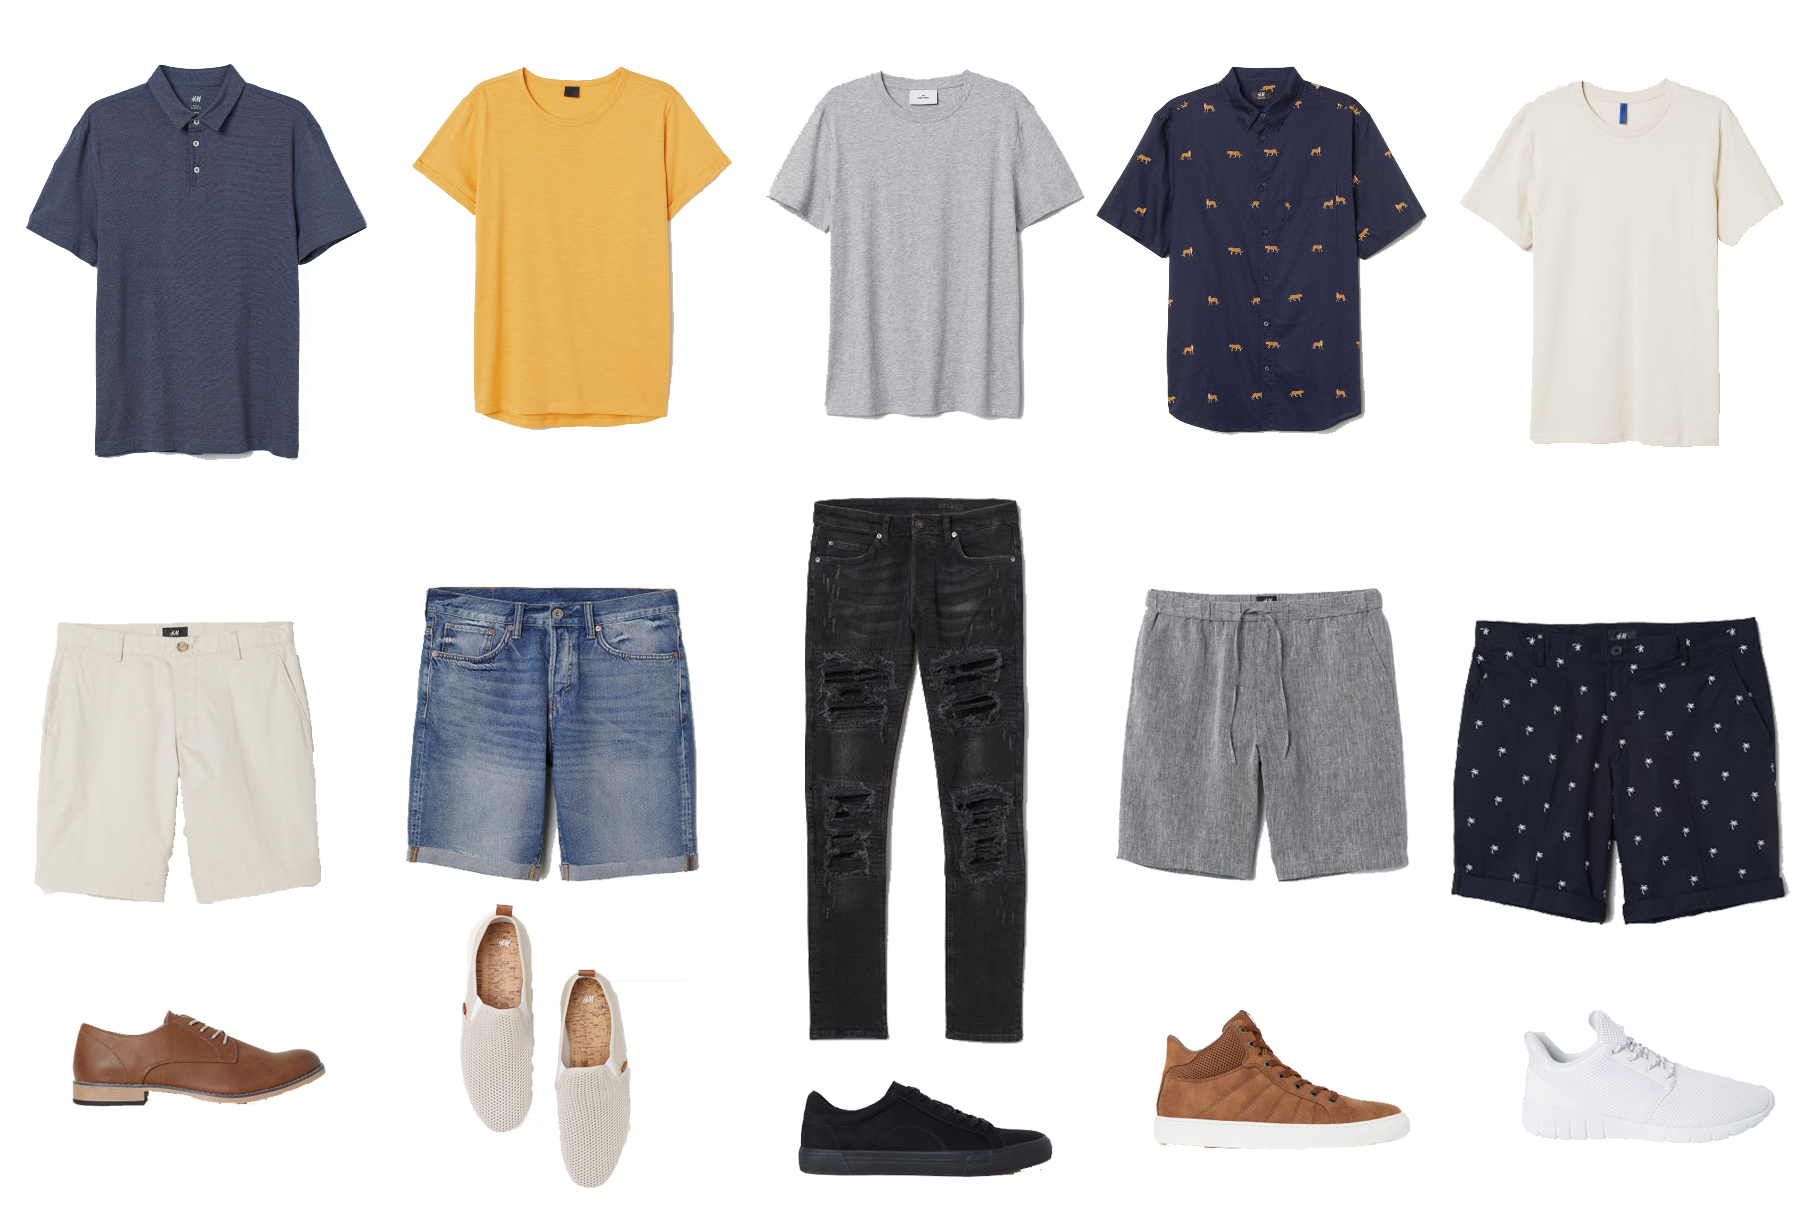 mens-ontario-summer-outfit-guide.jpg